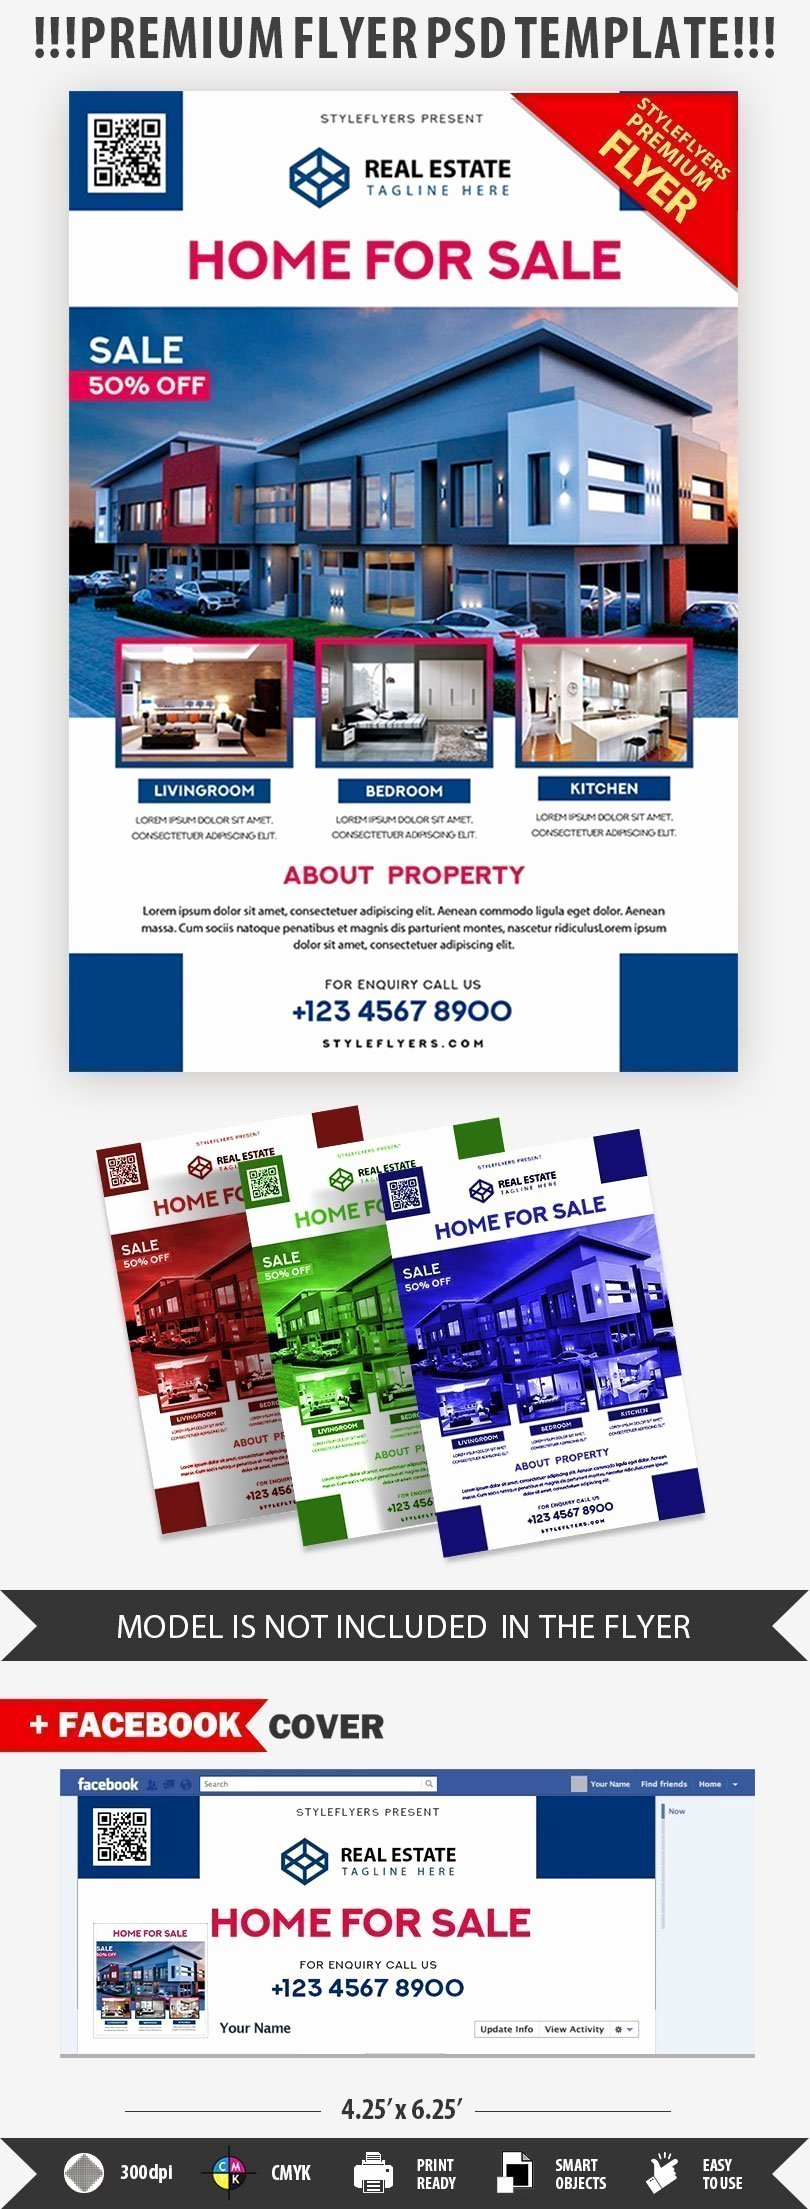 Real Estate Flyer Template Psd Luxury Real Estate Psd Flyer Template Styleflyers